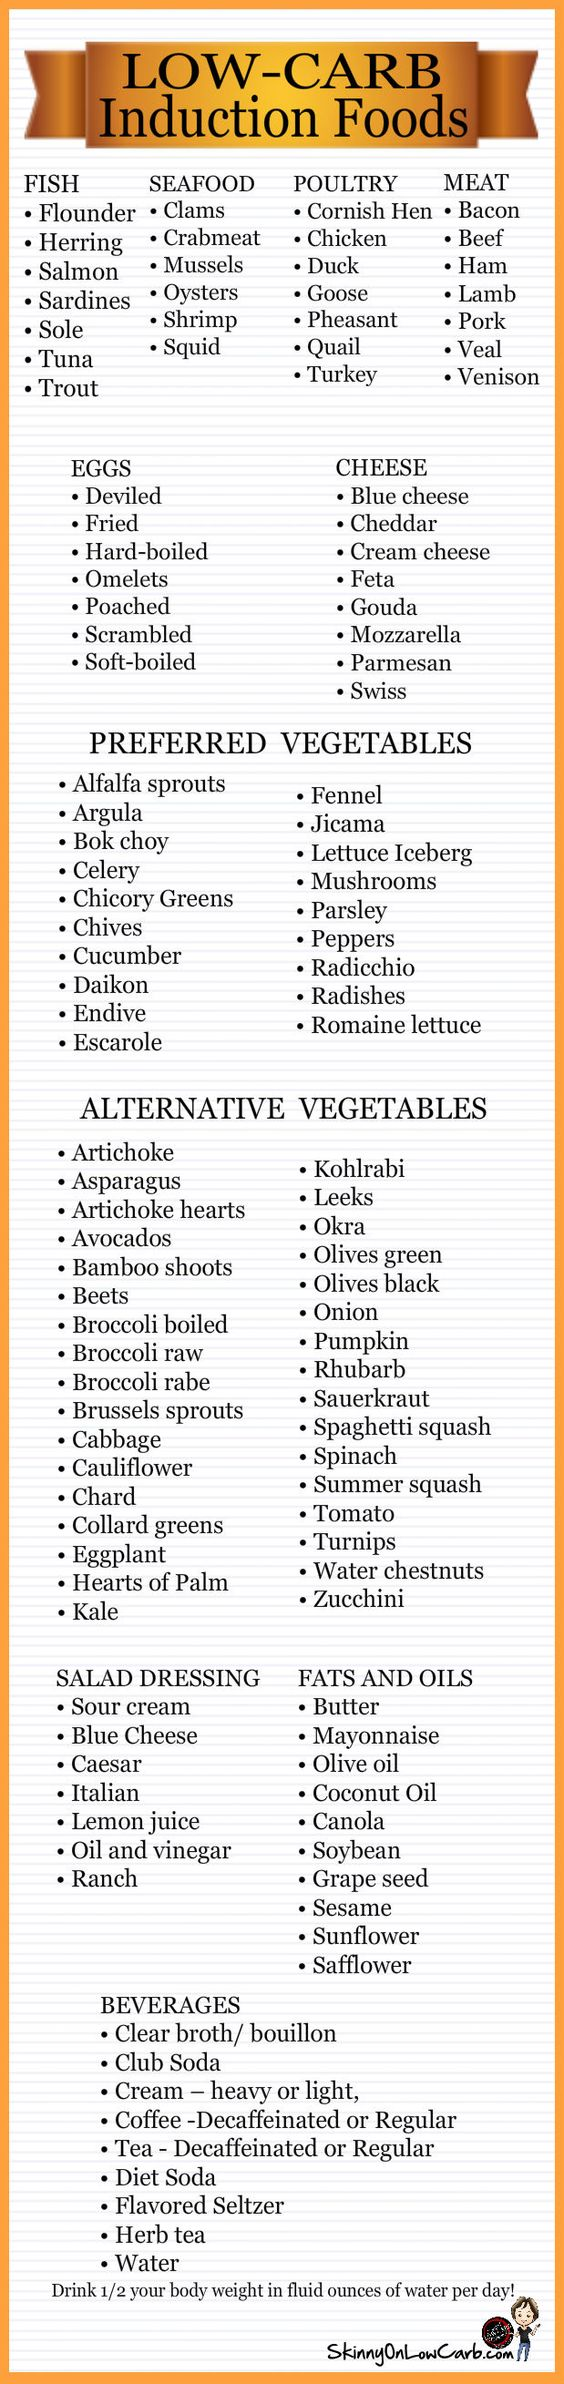 I am looking to take off those last few pounds b4 the beach! So I decided to go onto induction for the last 2 weeks before vacation. This quick and easy to see chart of #lowcarbinduction foods will help to keep me on track! You can find more like it, low